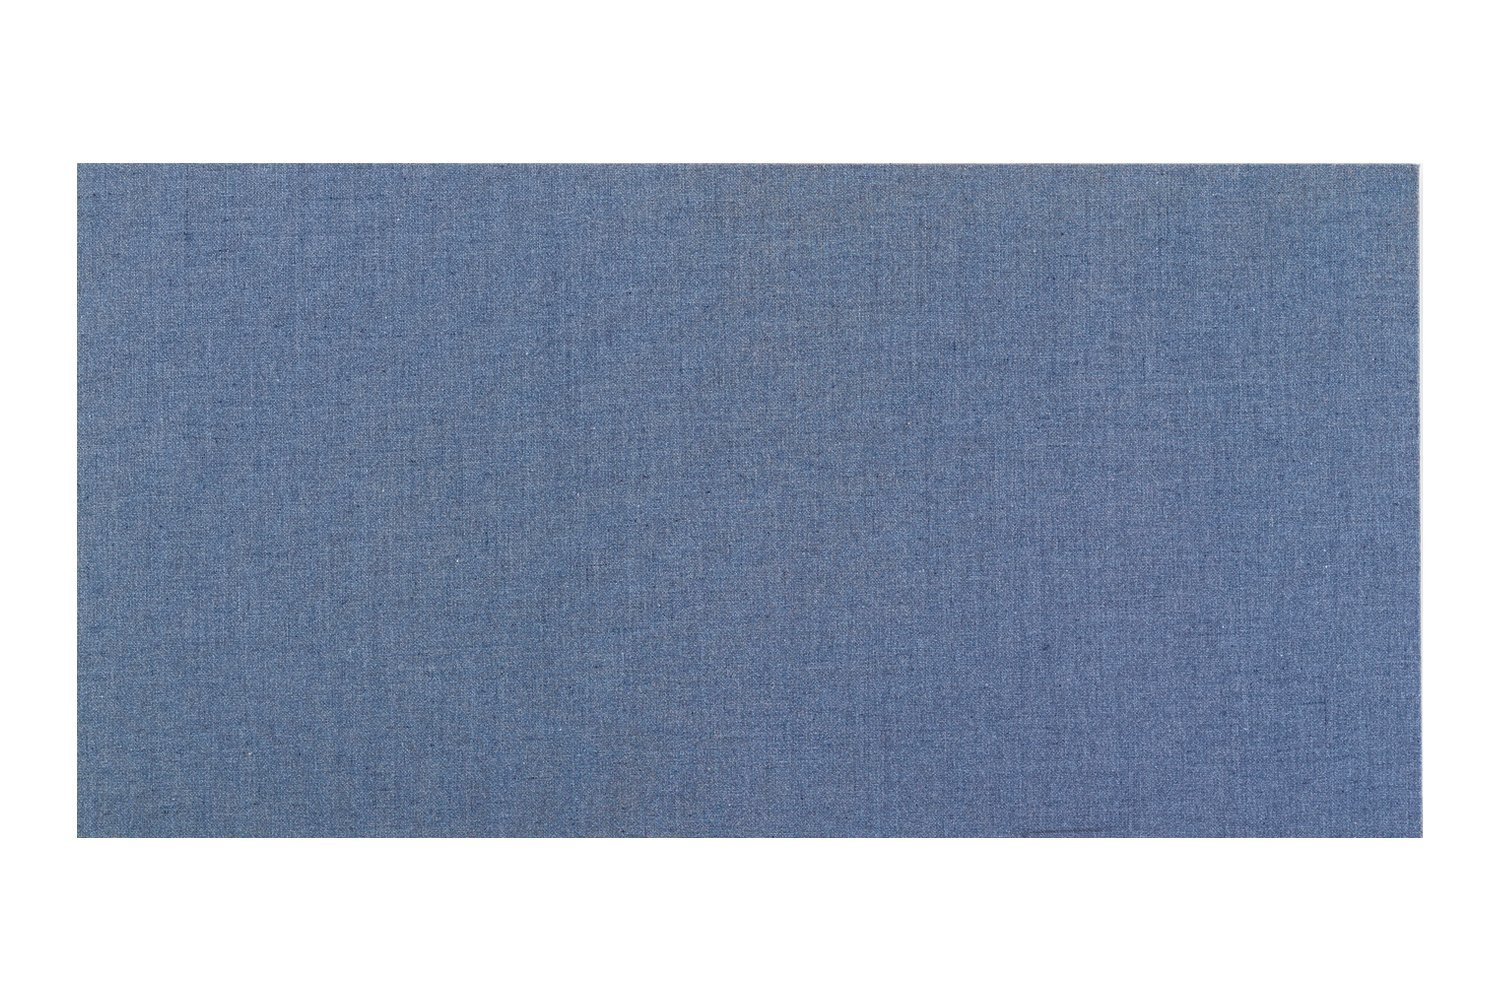 """Vinyl Fabric Covered Bulletin Boards - Wrapped Edge - Square Cornered Color Code: Desert Shore-93, Size: 2' 9.5"""" x 3' 9.5"""""""